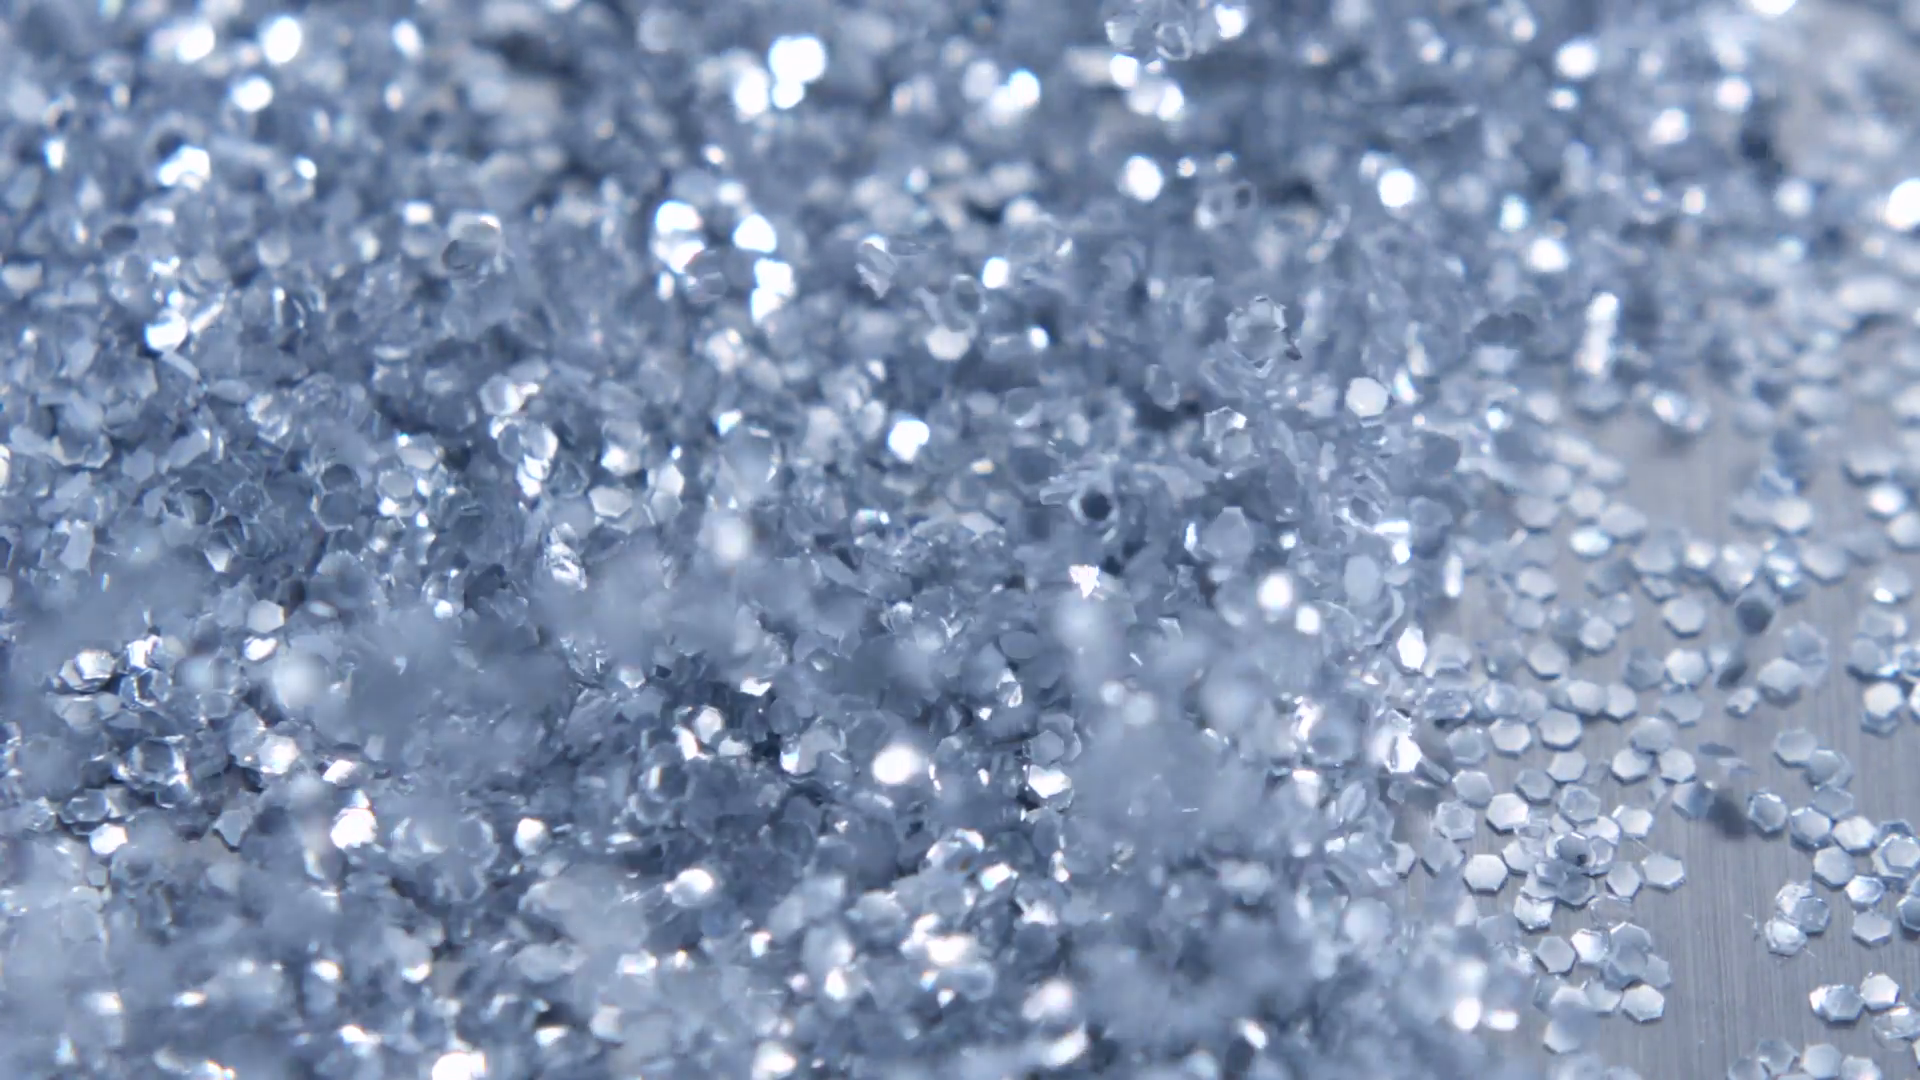 Blowing glitter, Slow Motion Stock Video Footage.